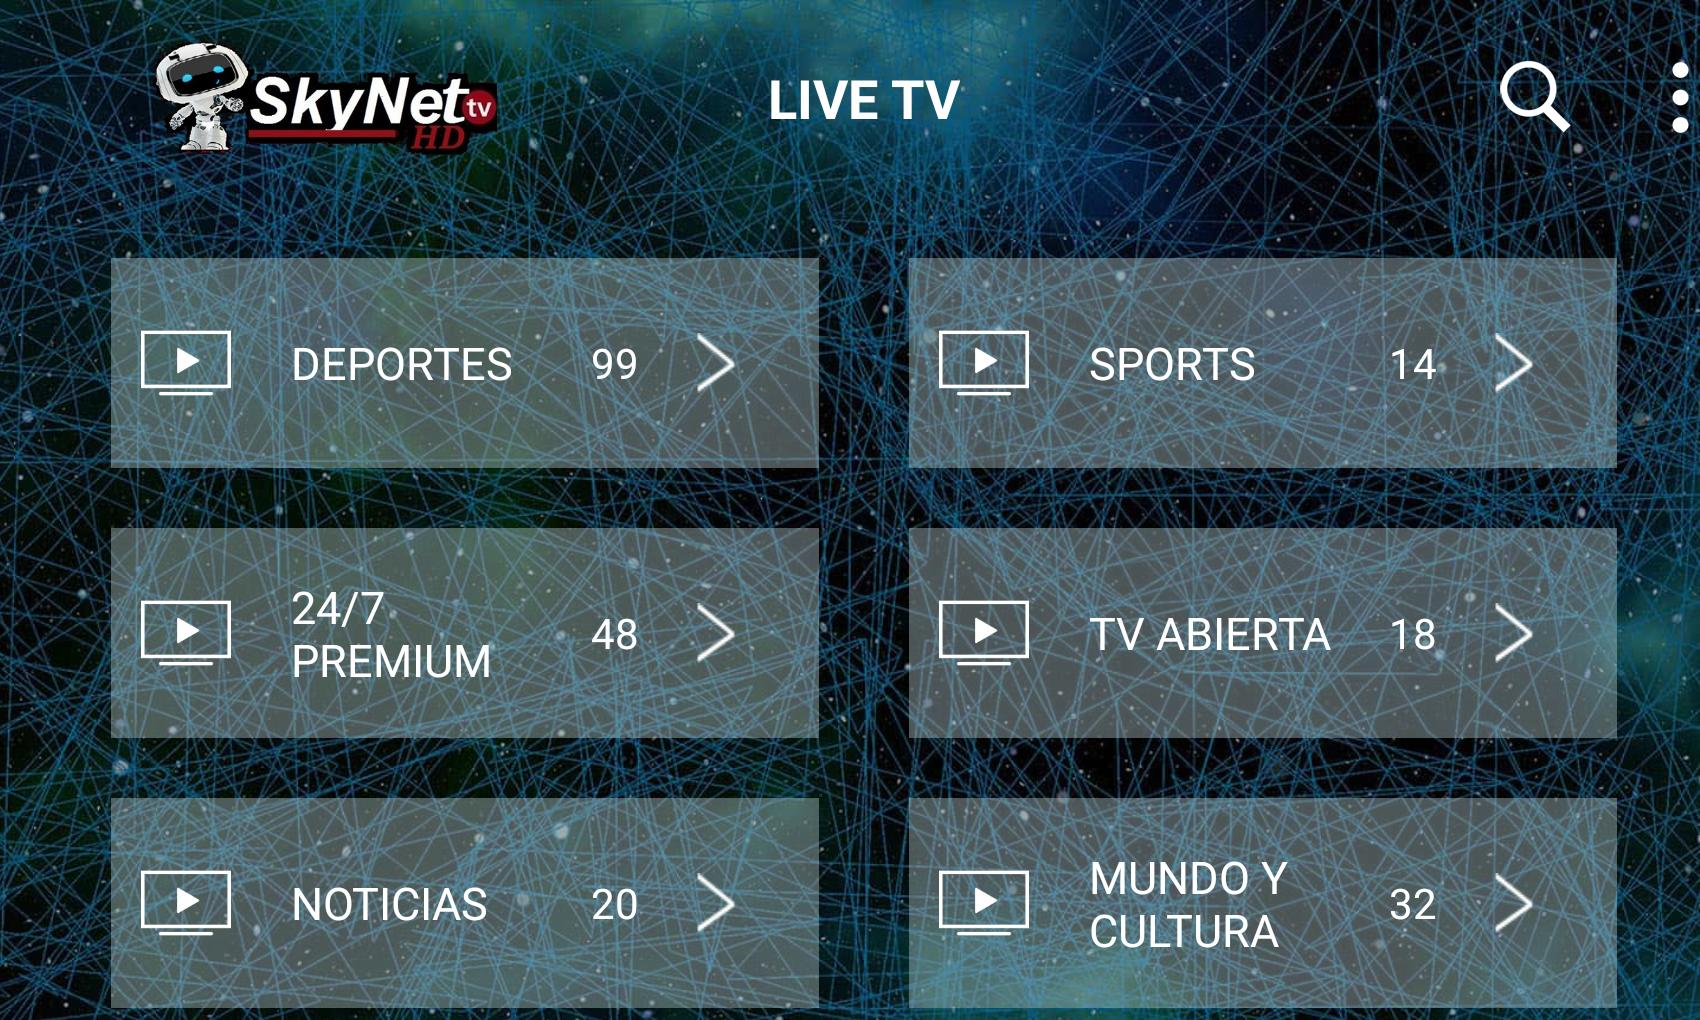 Skynet tv HD for Android - APK Download